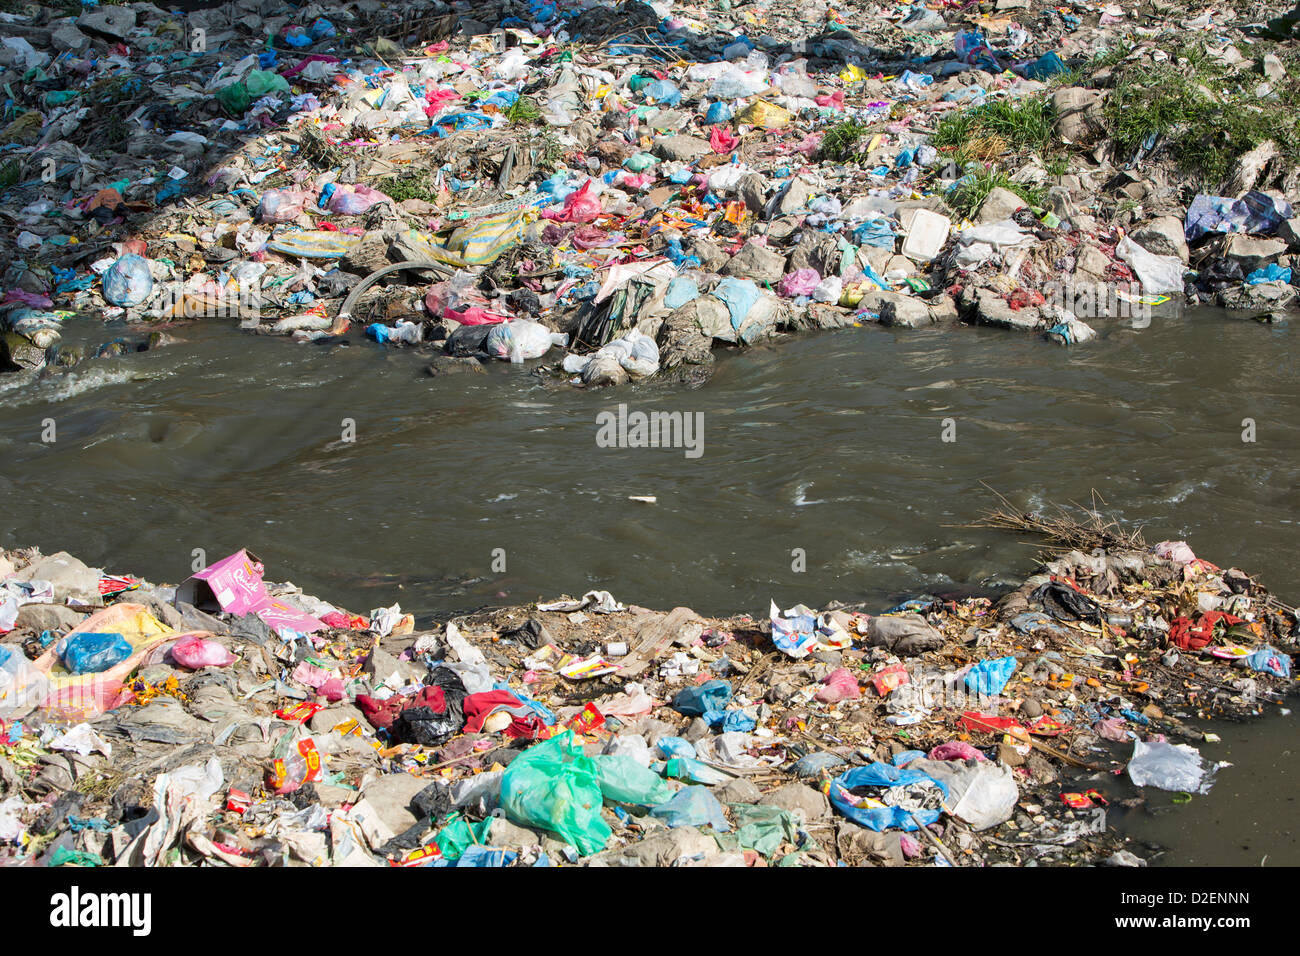 The Bagmati river running through Kathmandu in Nepal. The river is full of litter and raw sewage - Stock Image